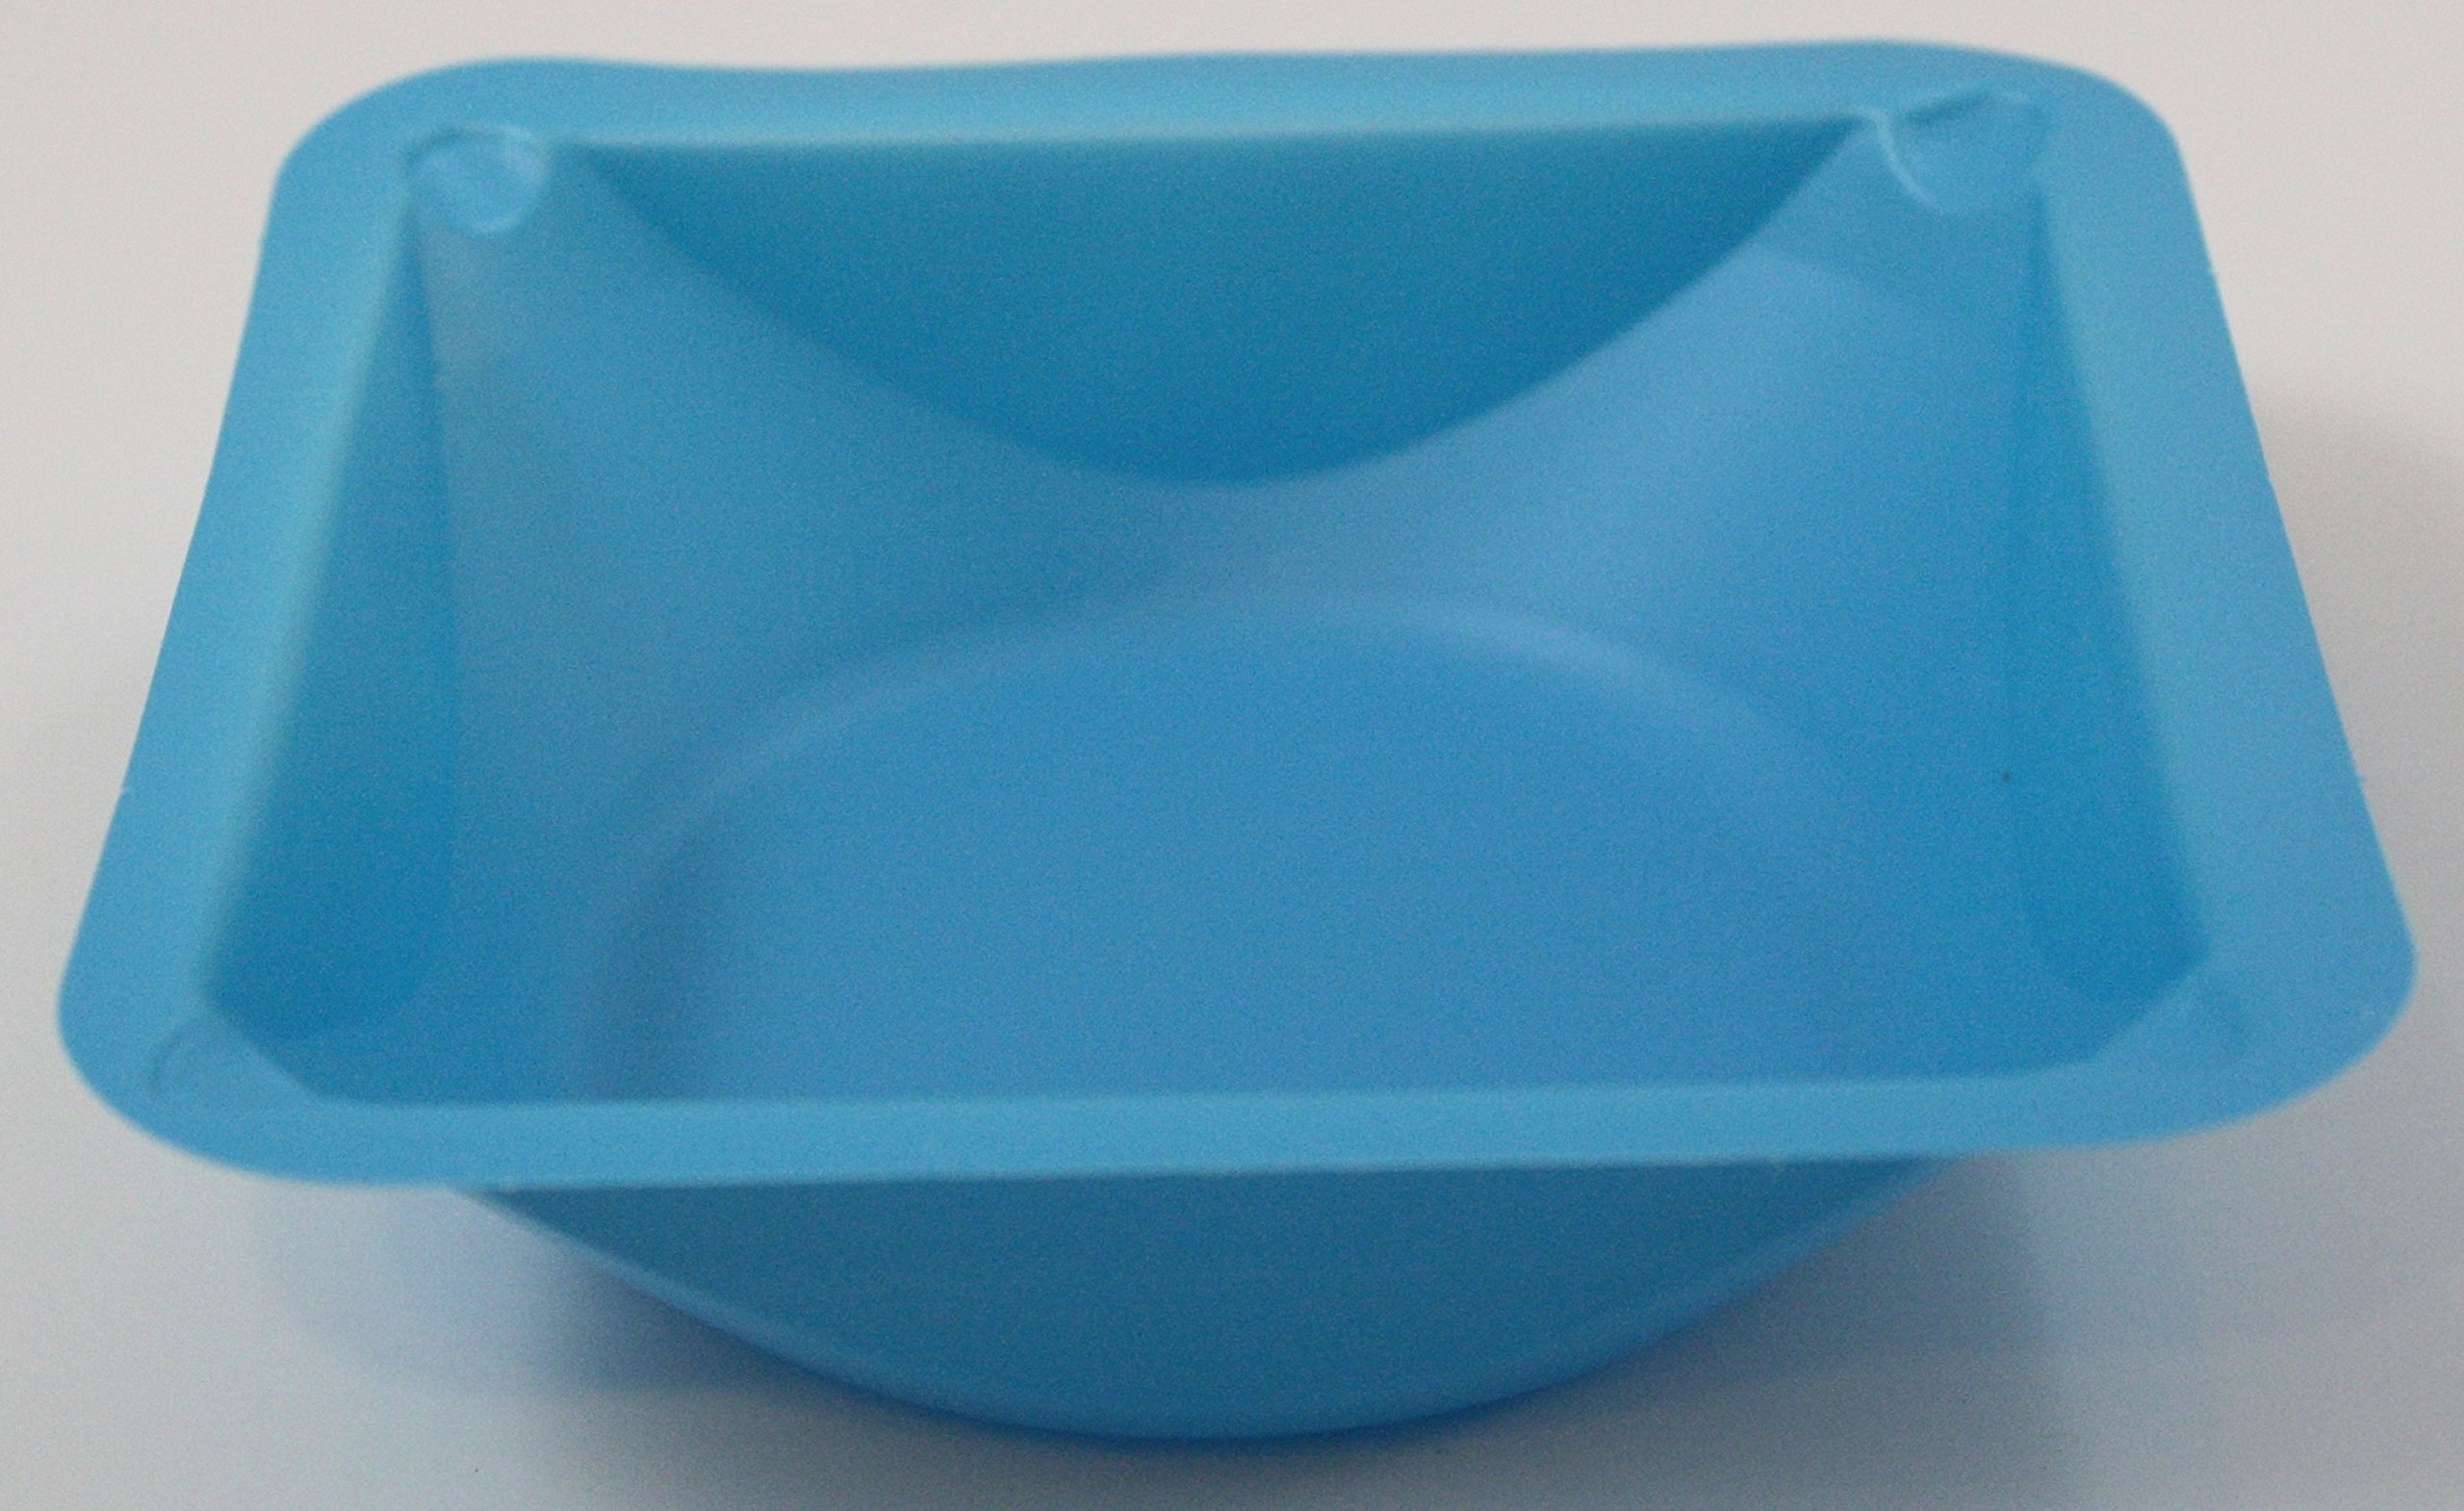 Blue Medium Polystyrene Weigh Boats: Case of 500 Weigh Dishes